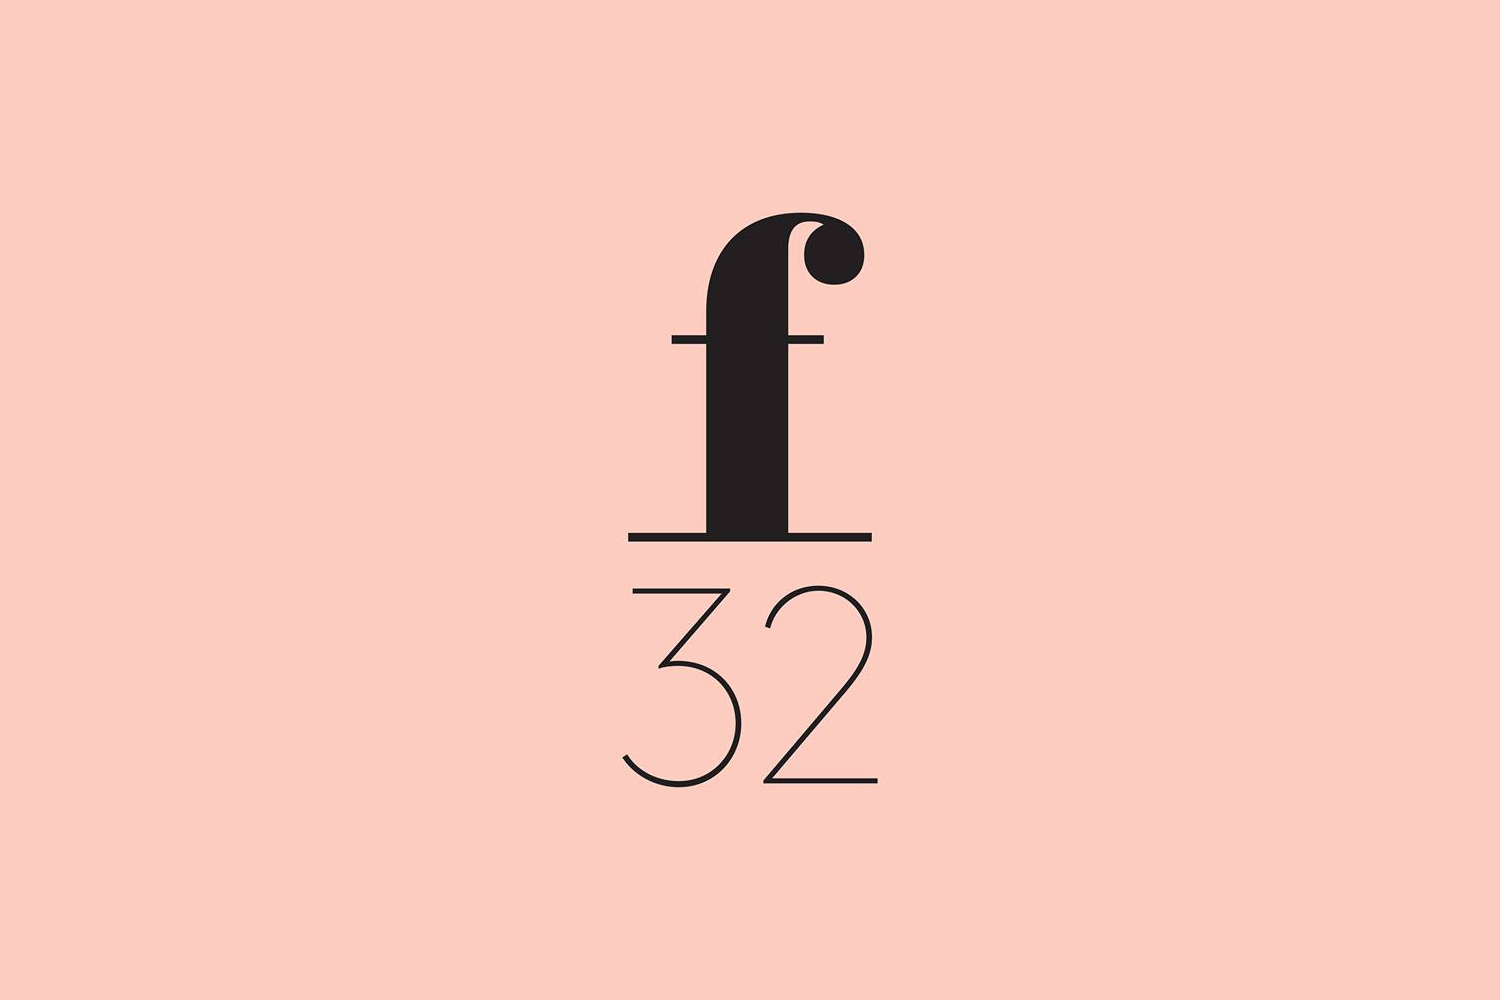 Brand identity and logo by Blok for LA based trend-watching company f32